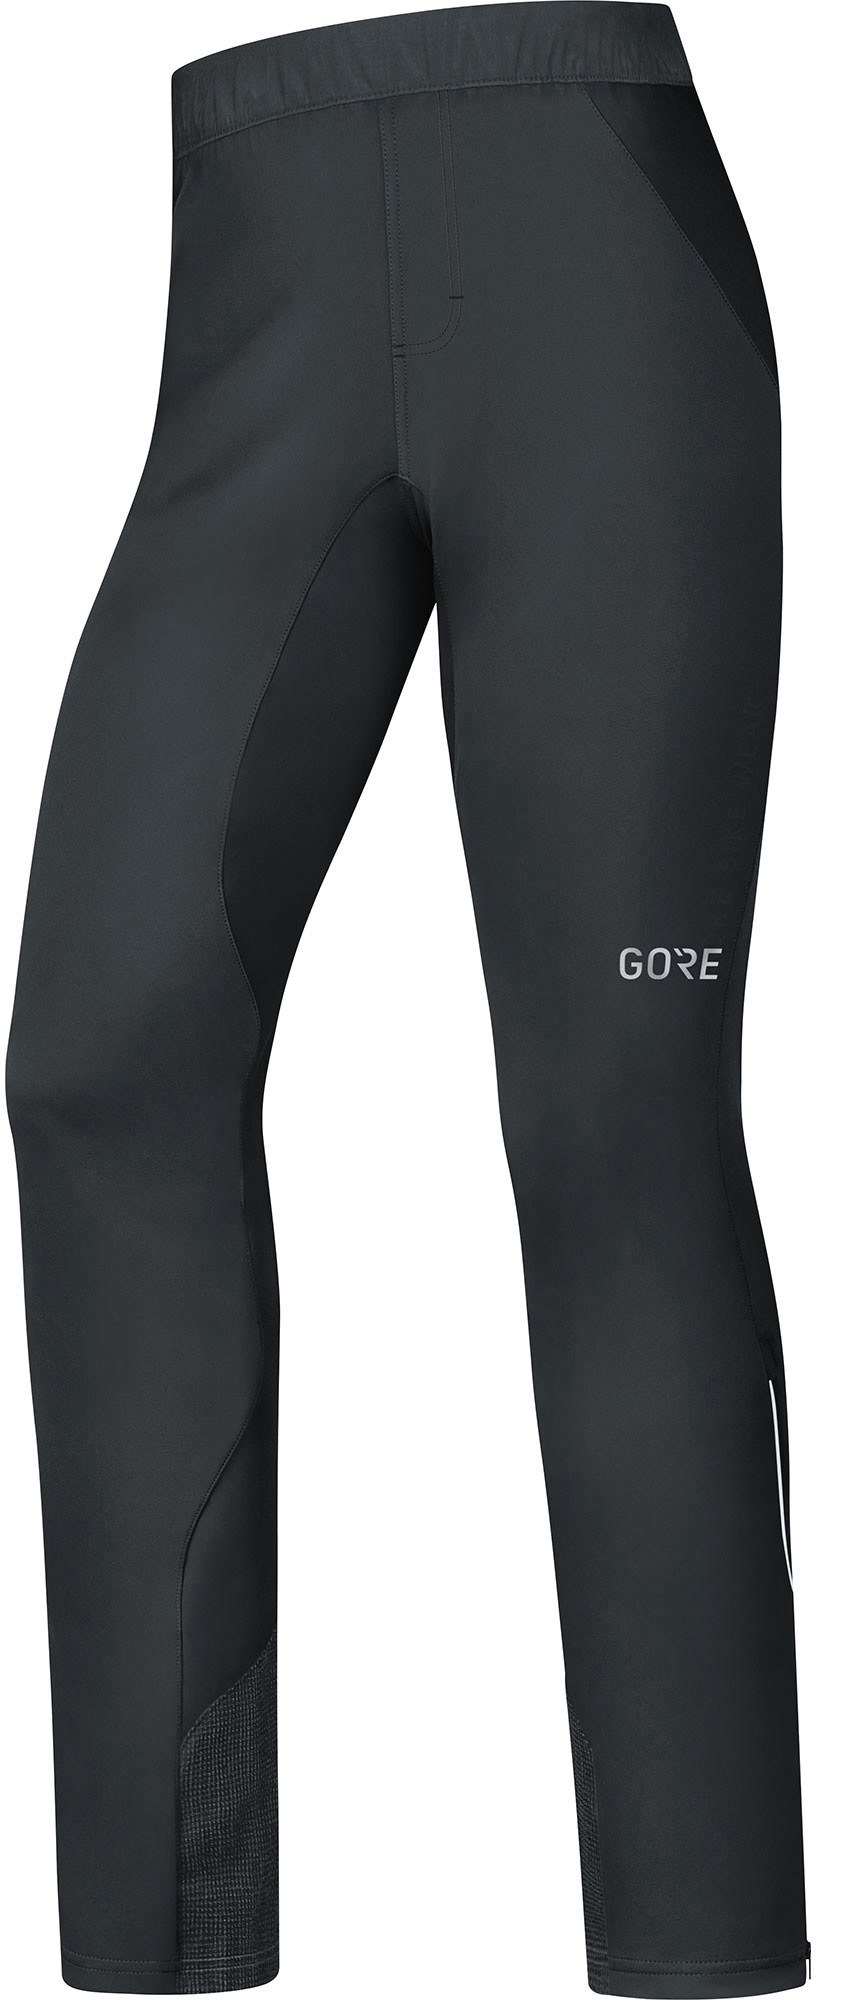 GORE BIKE WEAR C5 Gore Windstopper Trail Pants - Men's